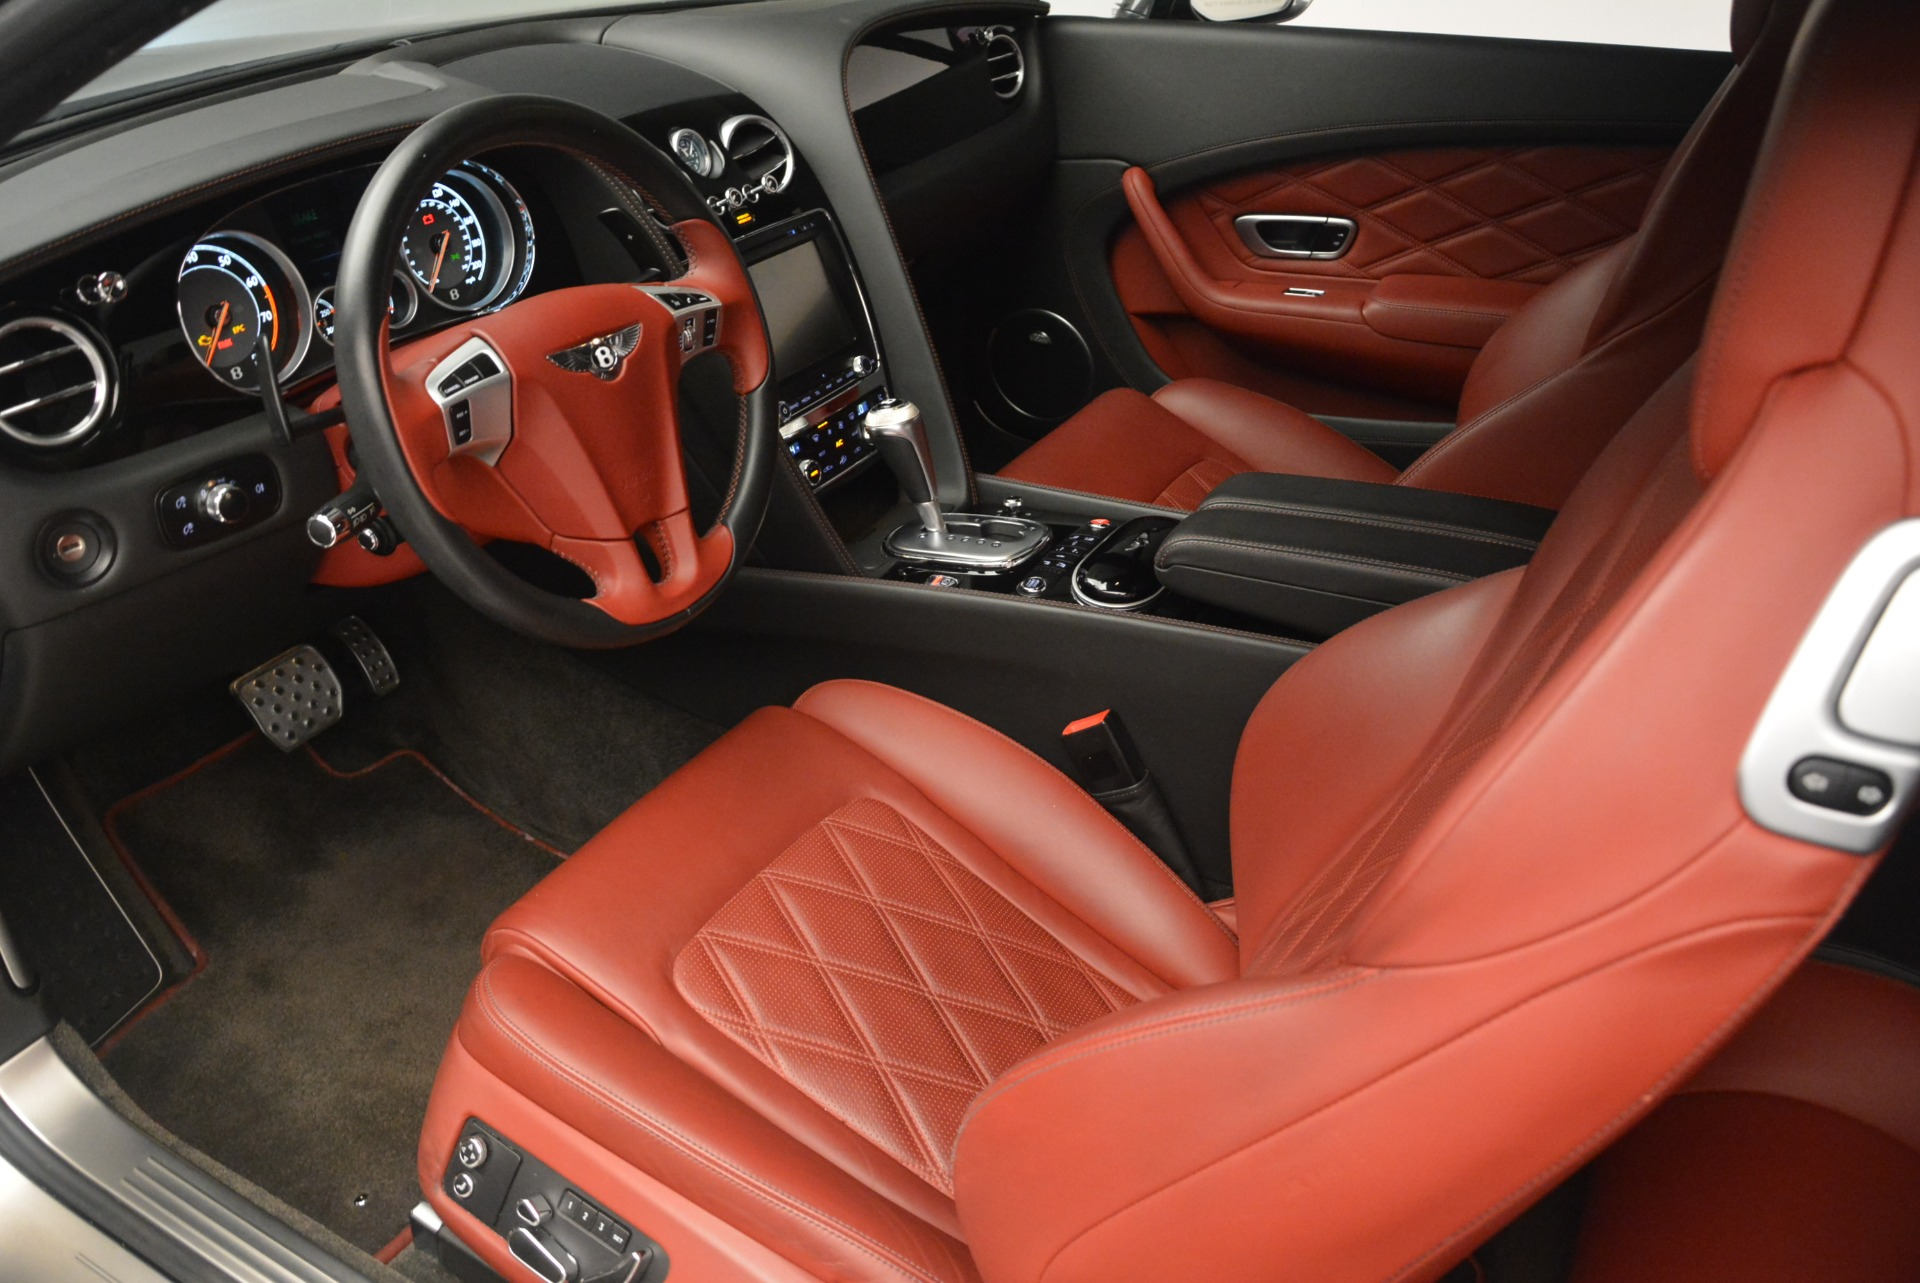 Used 2015 Bentley Continental GT V8 S For Sale In Greenwich, CT. Alfa Romeo of Greenwich, 7360 2207_p18